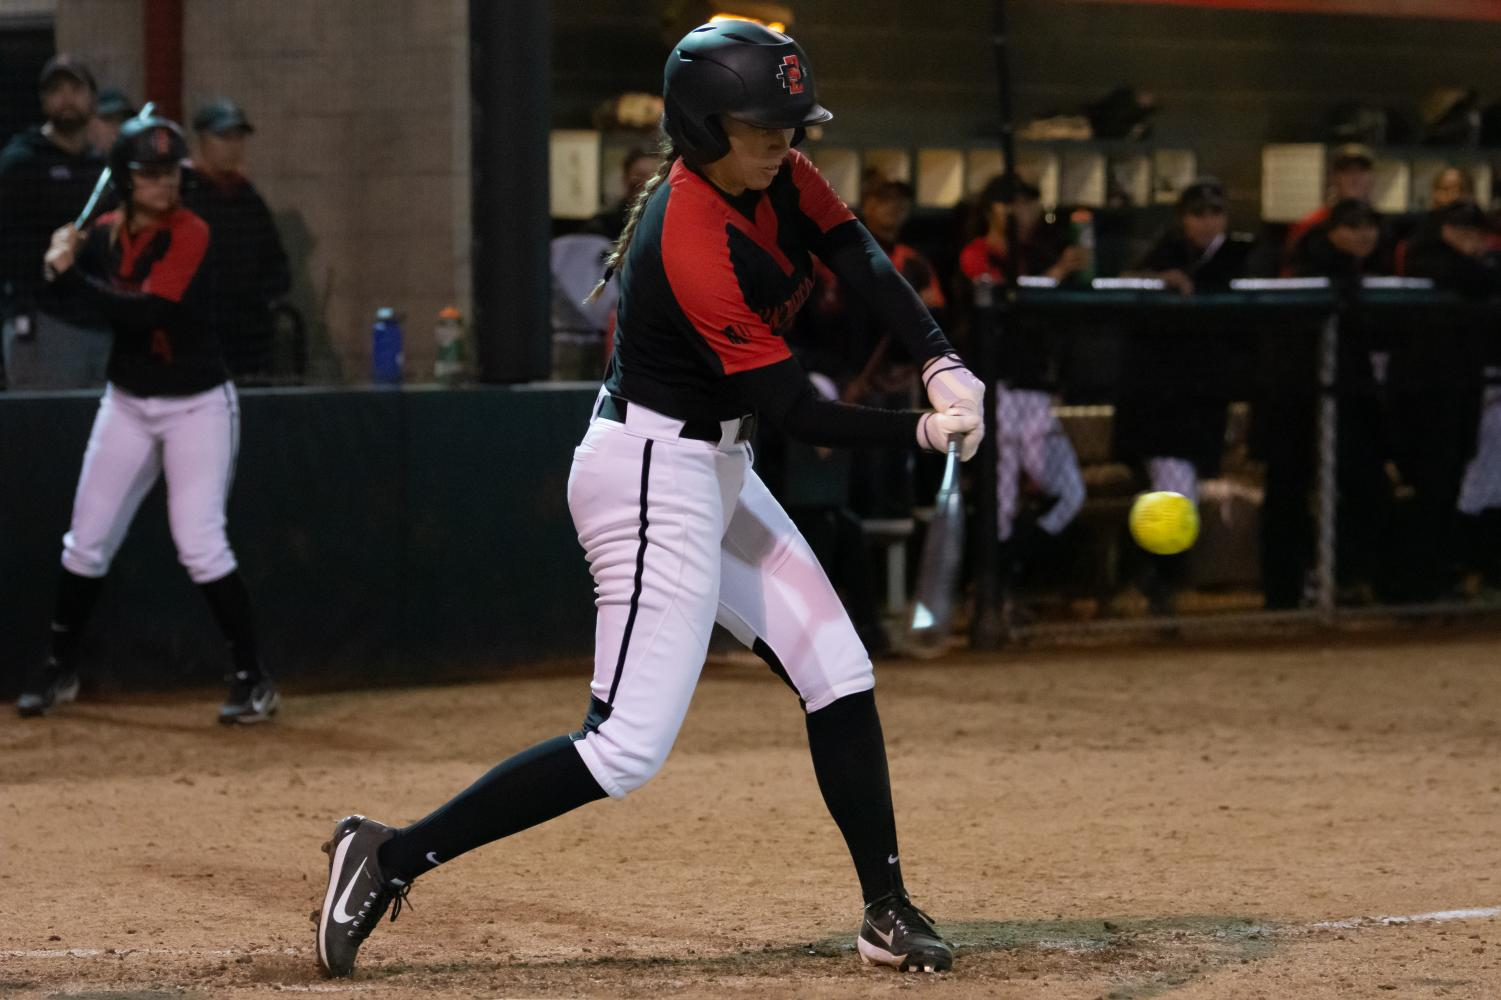 Junior infielder Alicia Garcia connects for a solo home run during the Aztecs' 7-5 victory over Northern Illinois on Feb. 15 at the SDSU Softball Field.